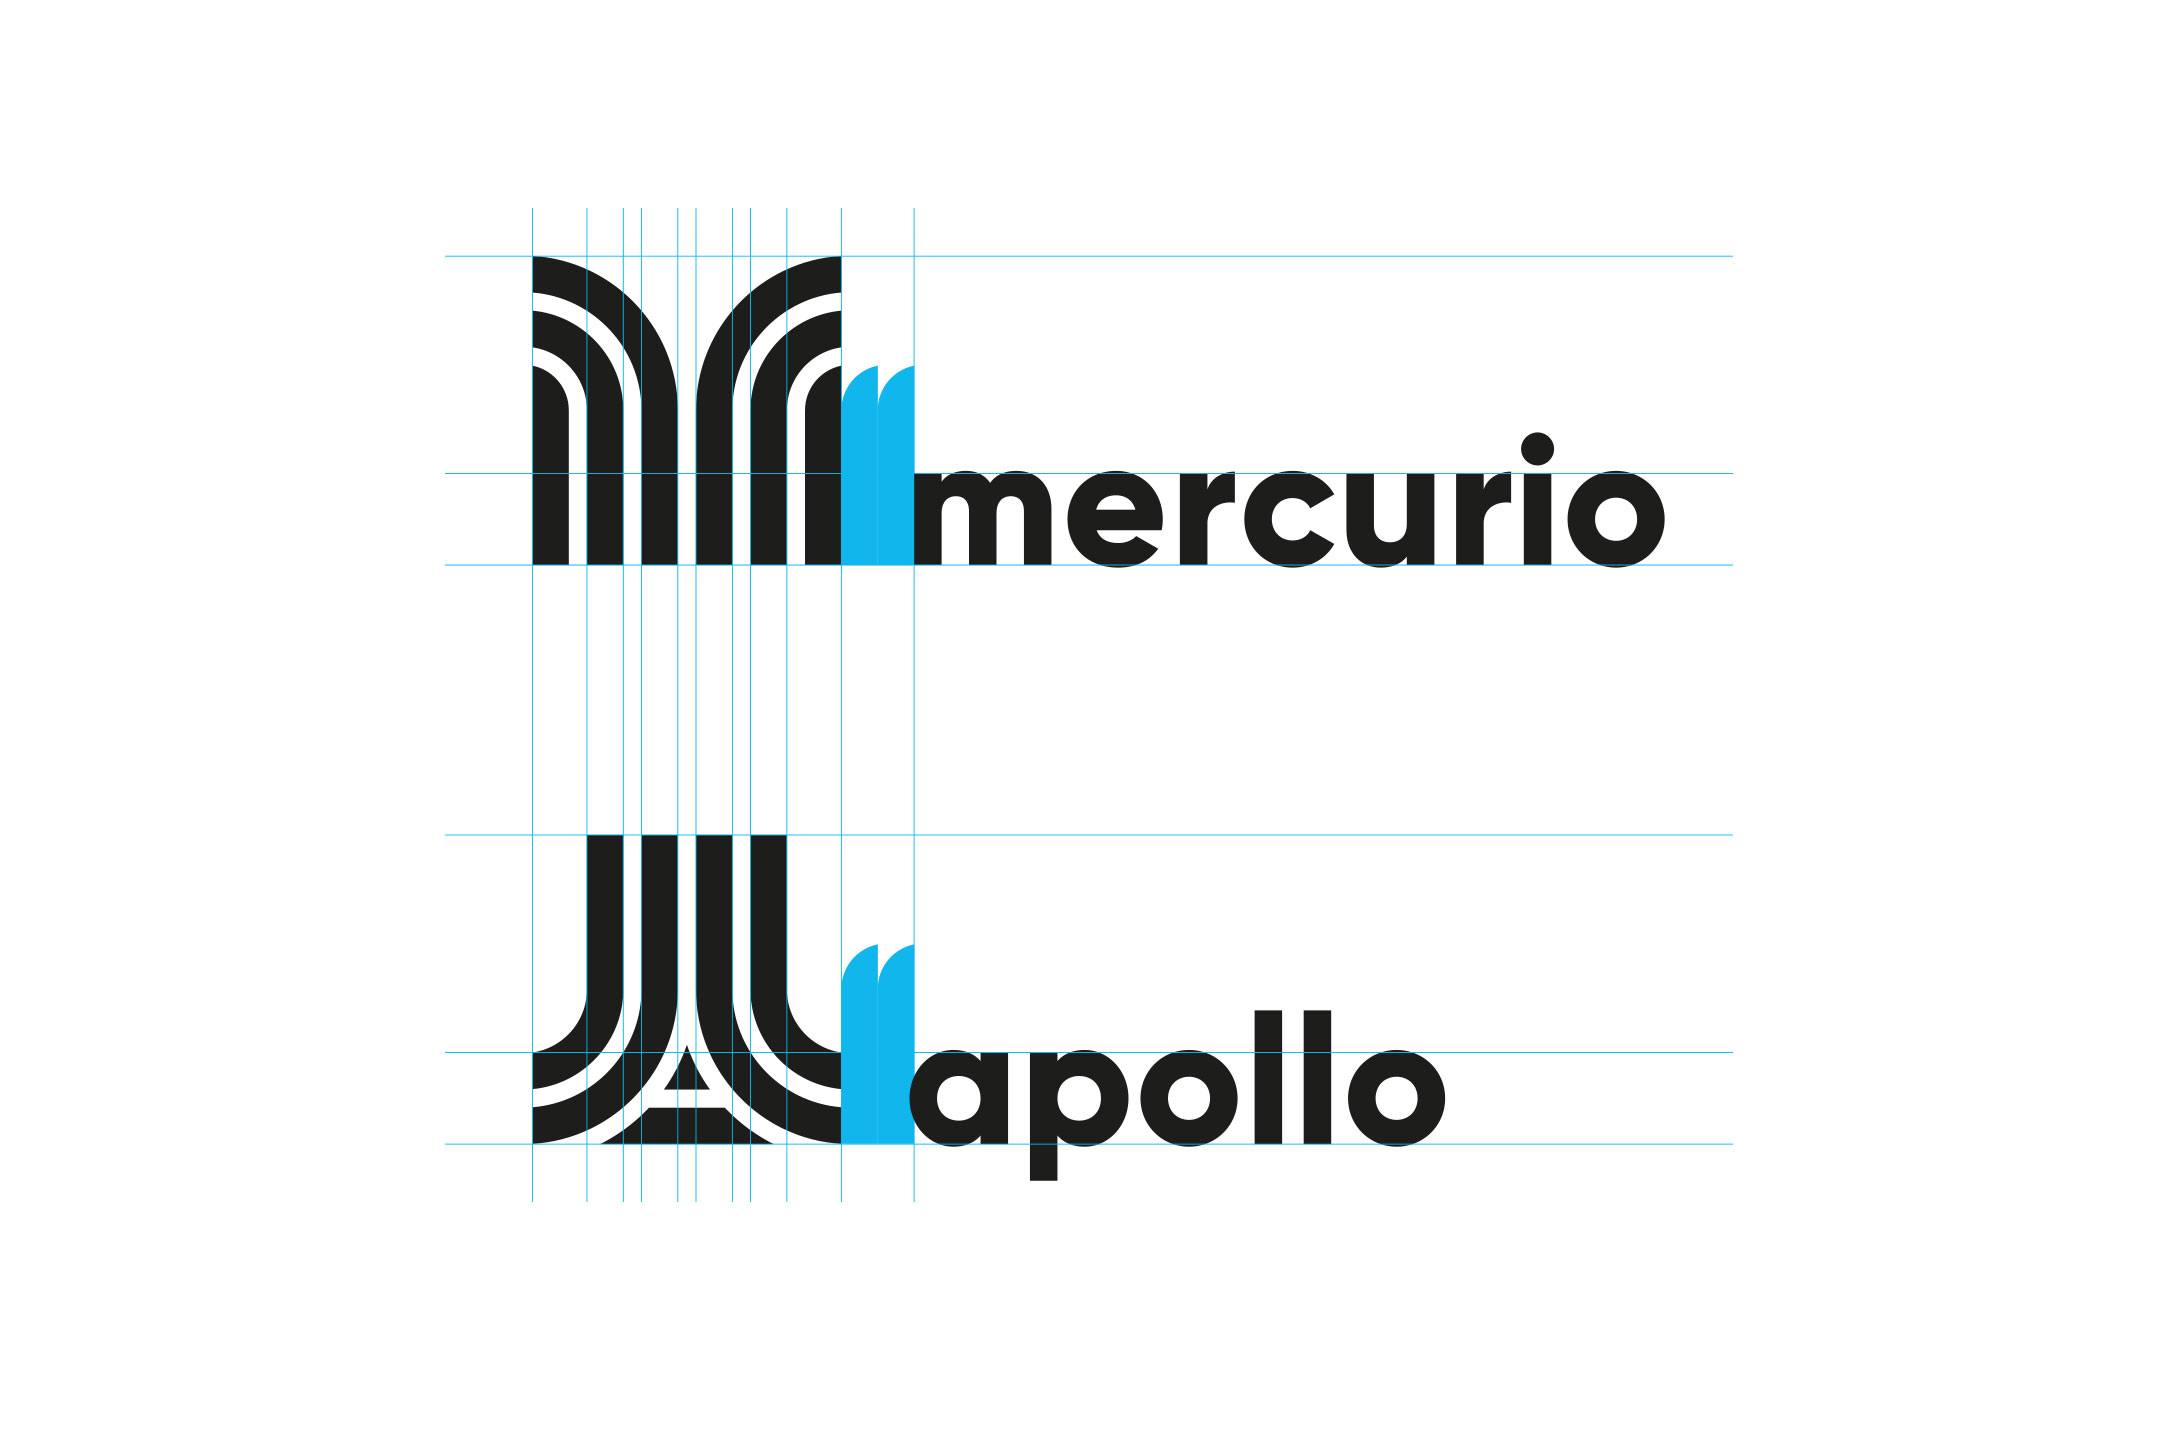 nashi-mercurio-apollo-construction